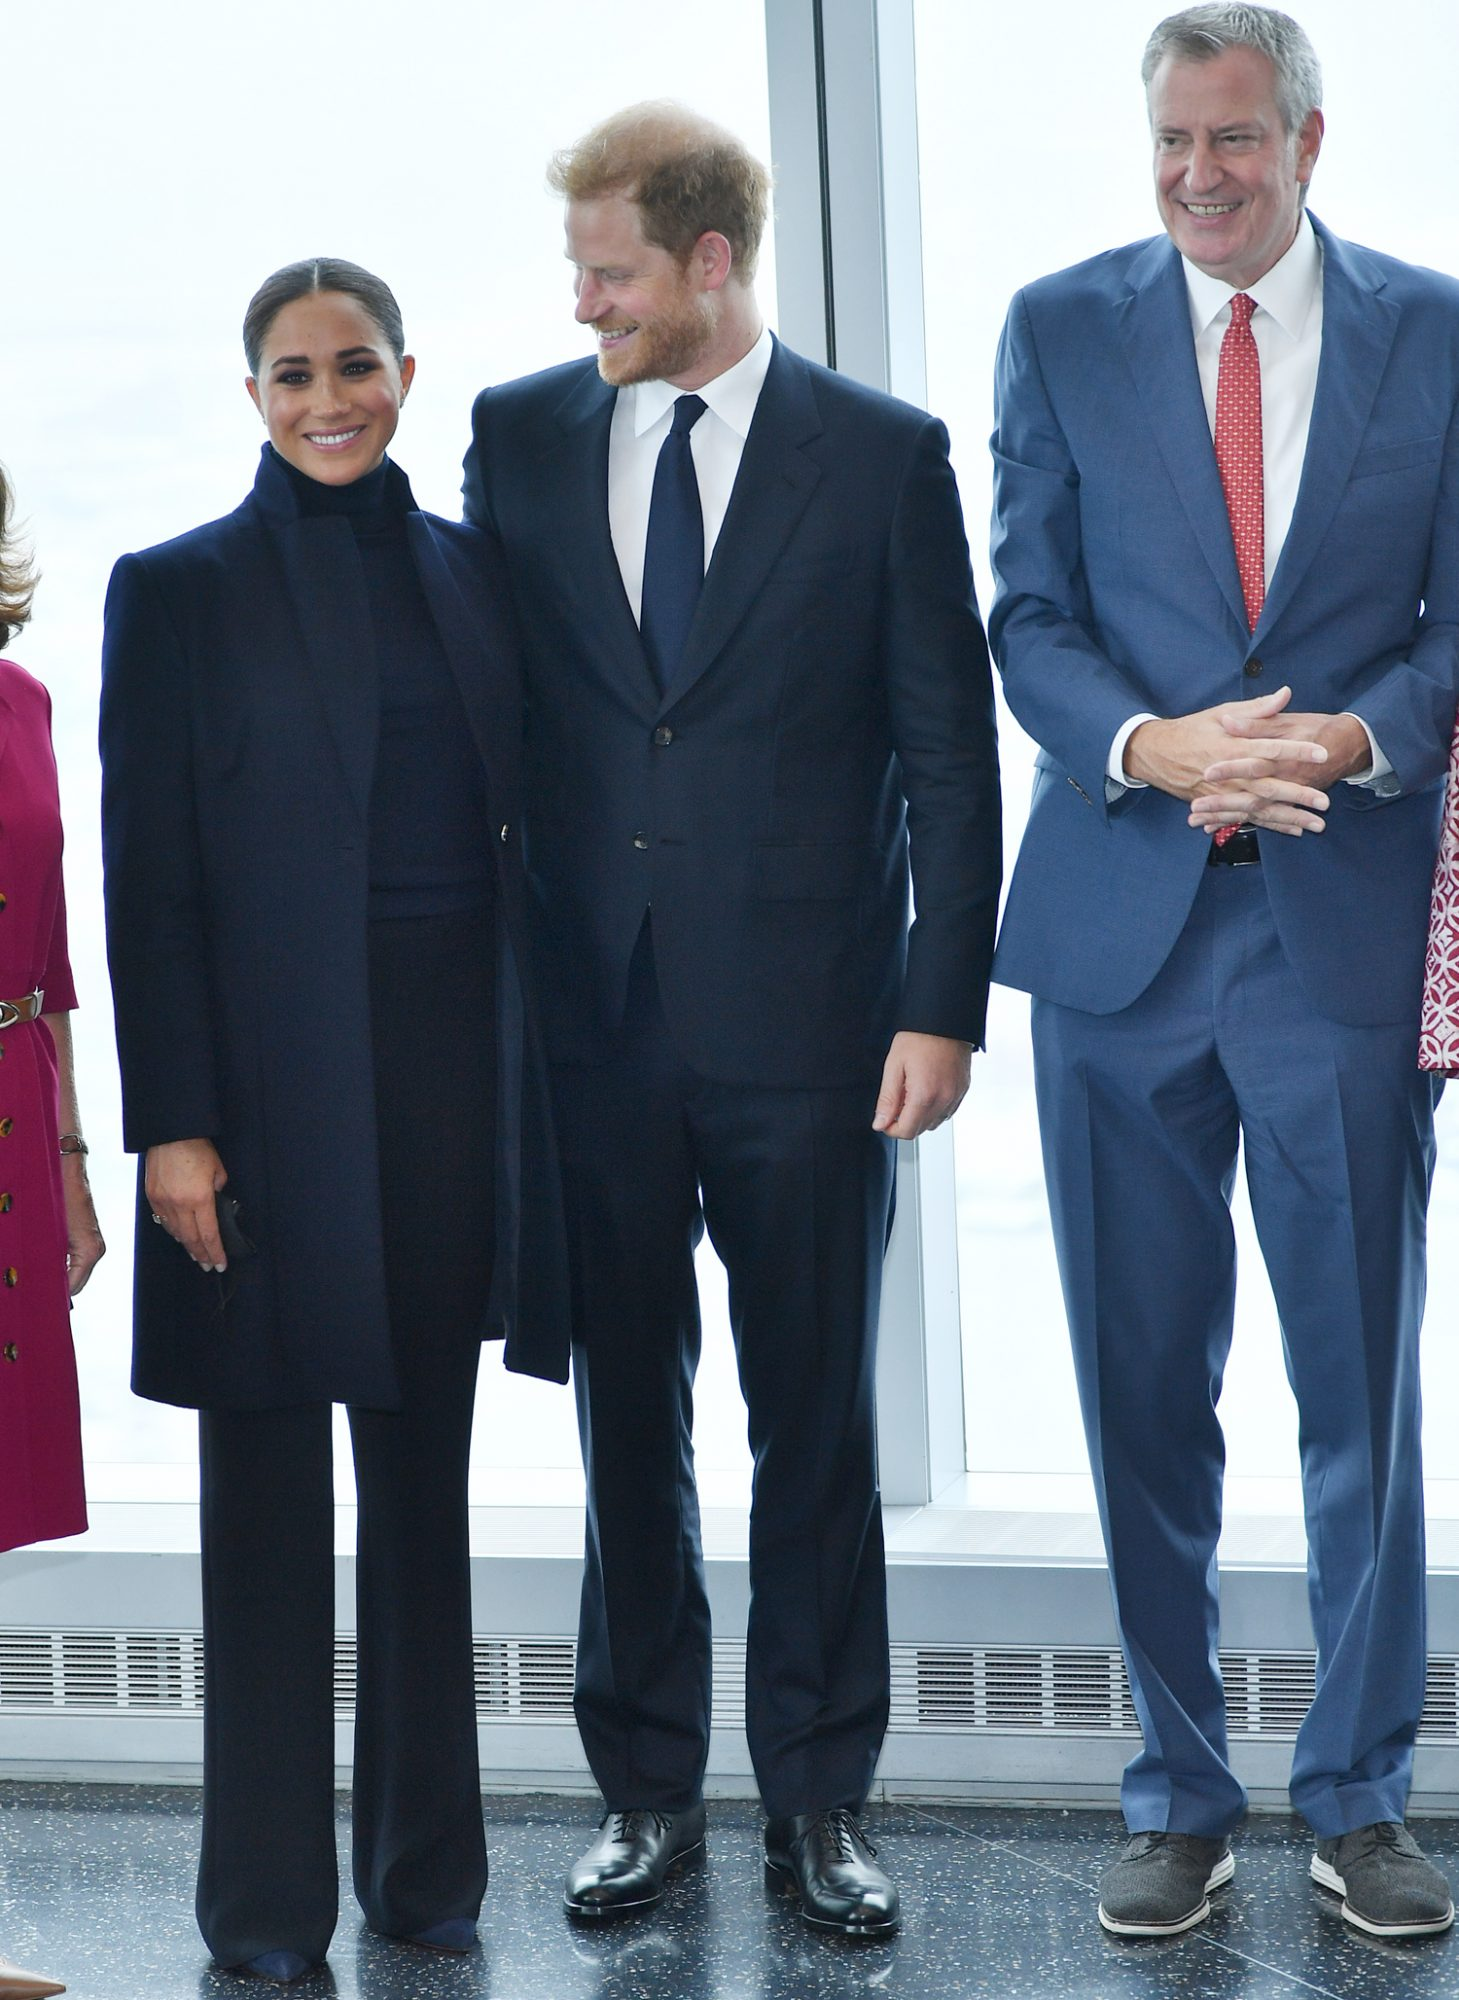 Meghan, Duchess of Sussex and Prince Harry, Duke of Sussex pose with NYC Mayor Bill De Blasio at One World Observatory